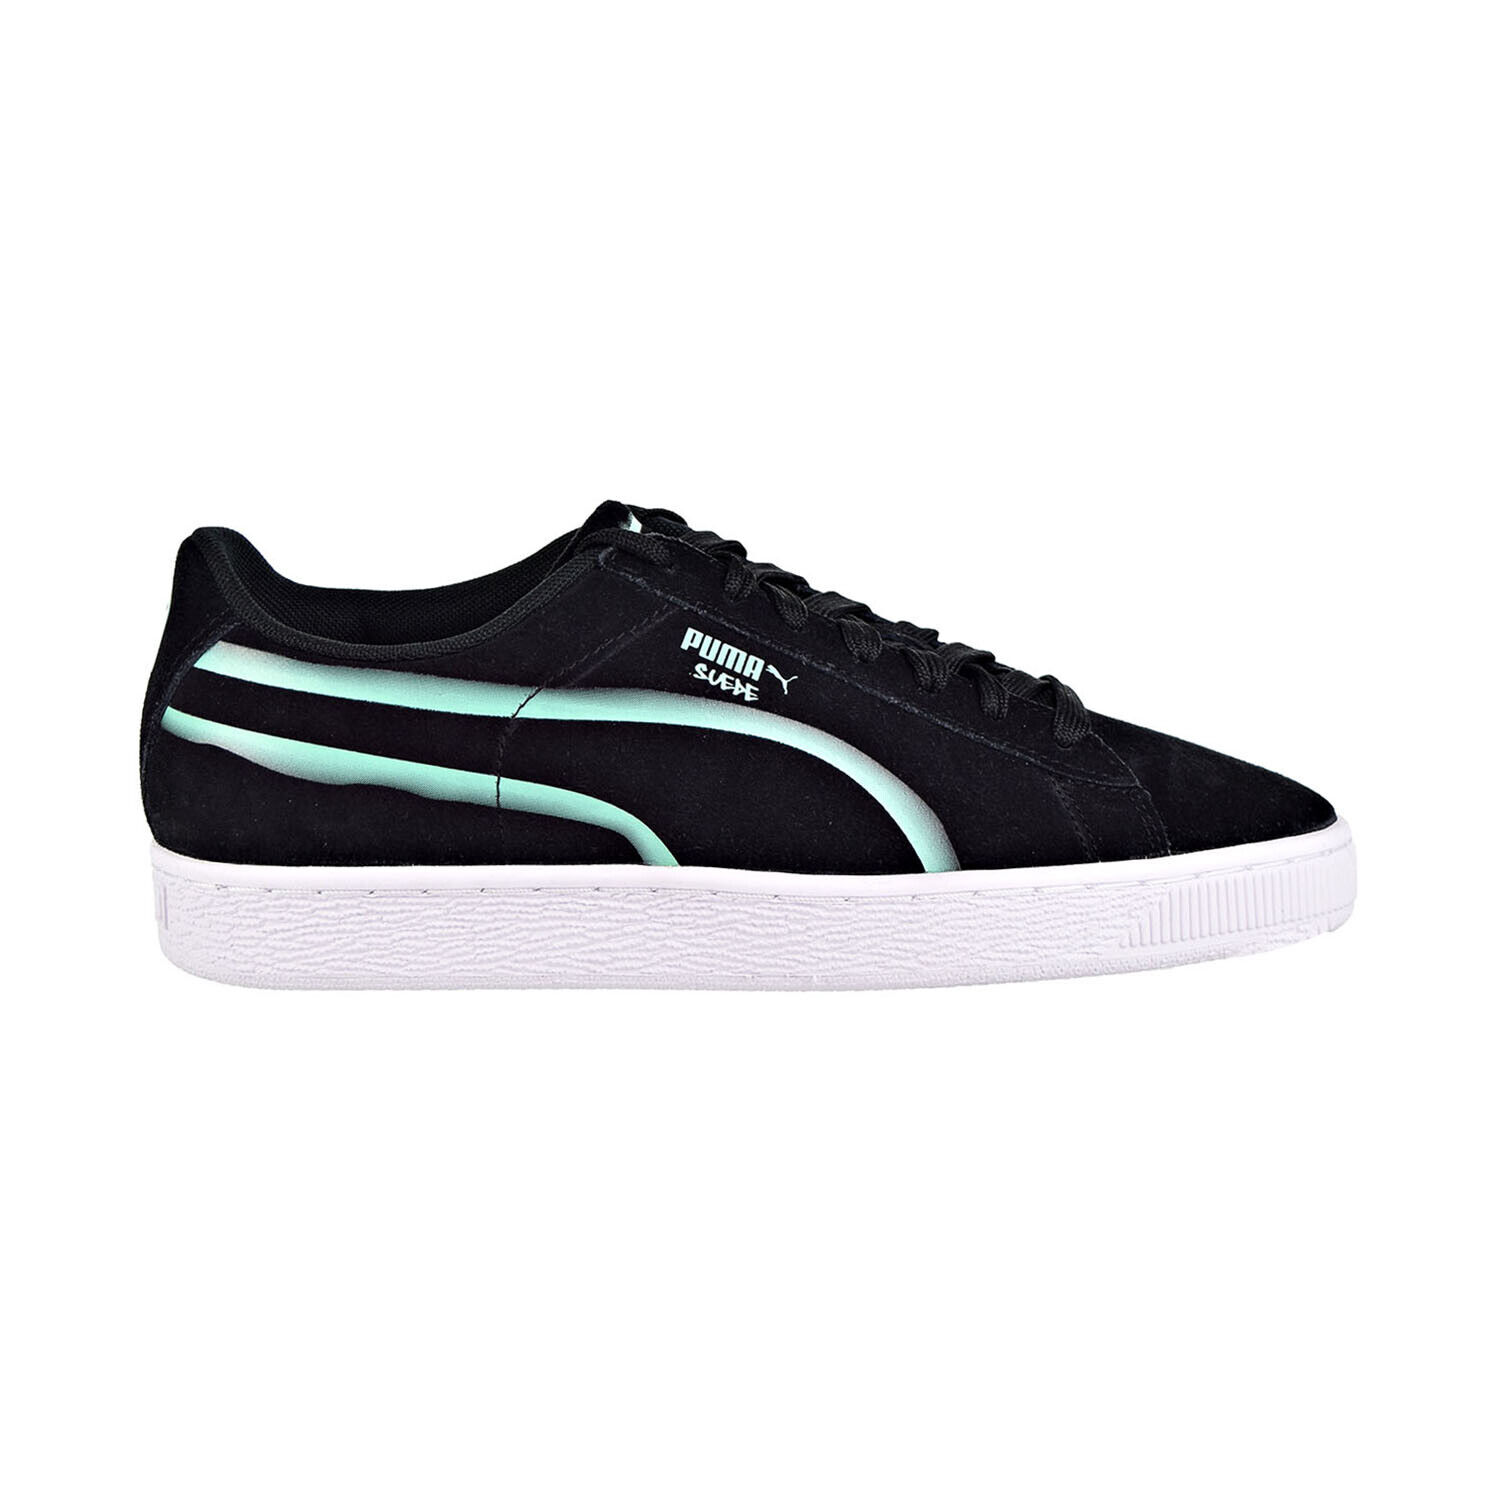 Puma Suede Classic X Hollows Men's Shoes Puma Black/Biscay Green 367394-01